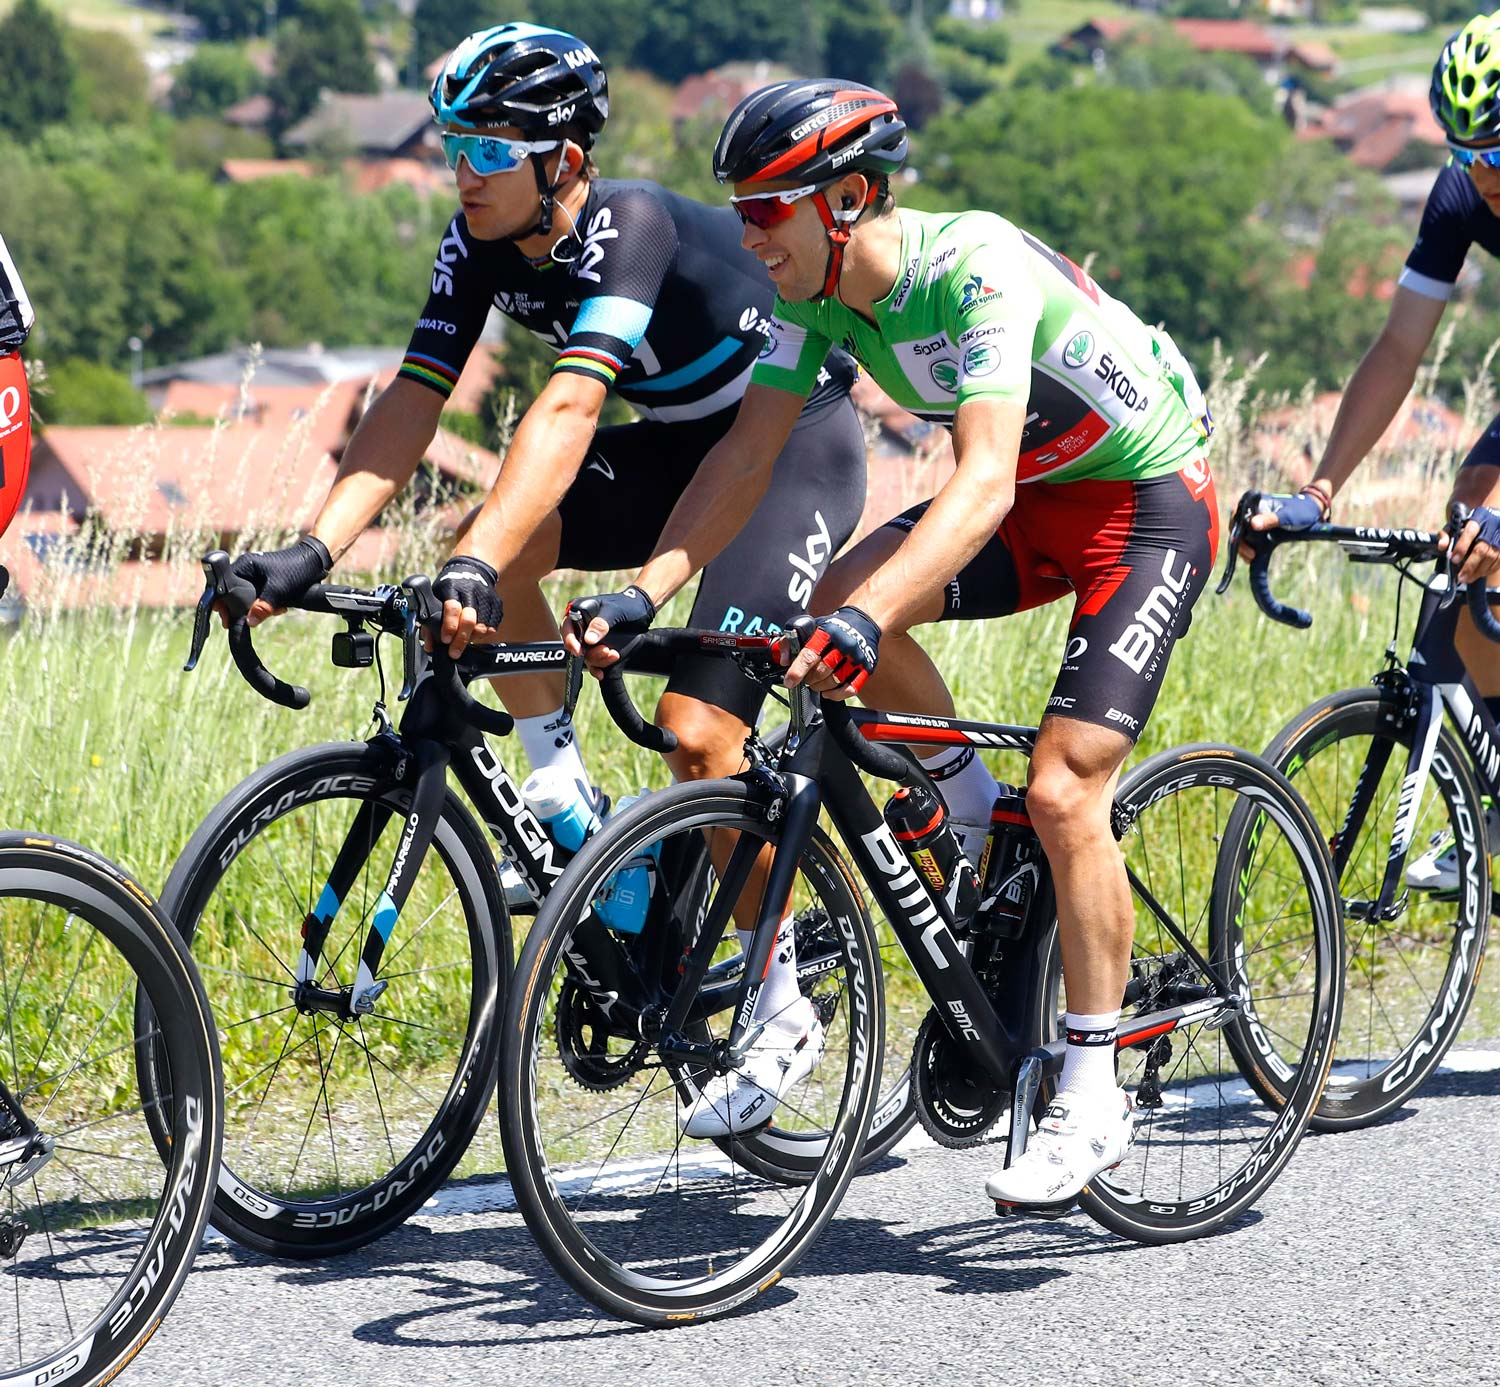 After his second place (behind Alberto Contador) in the uphill prologue TT at the Dauphiné, Porte spent a day in the green jersey. Photo: Graham Watson